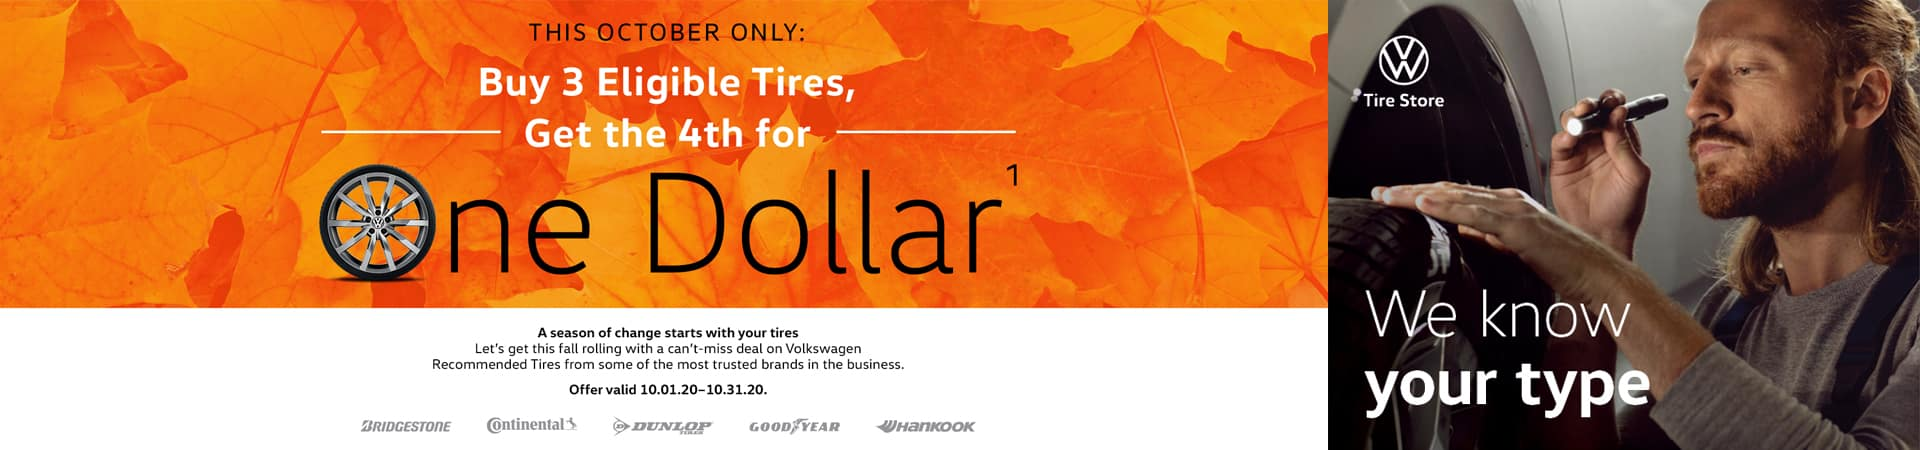 VW Tire Offer